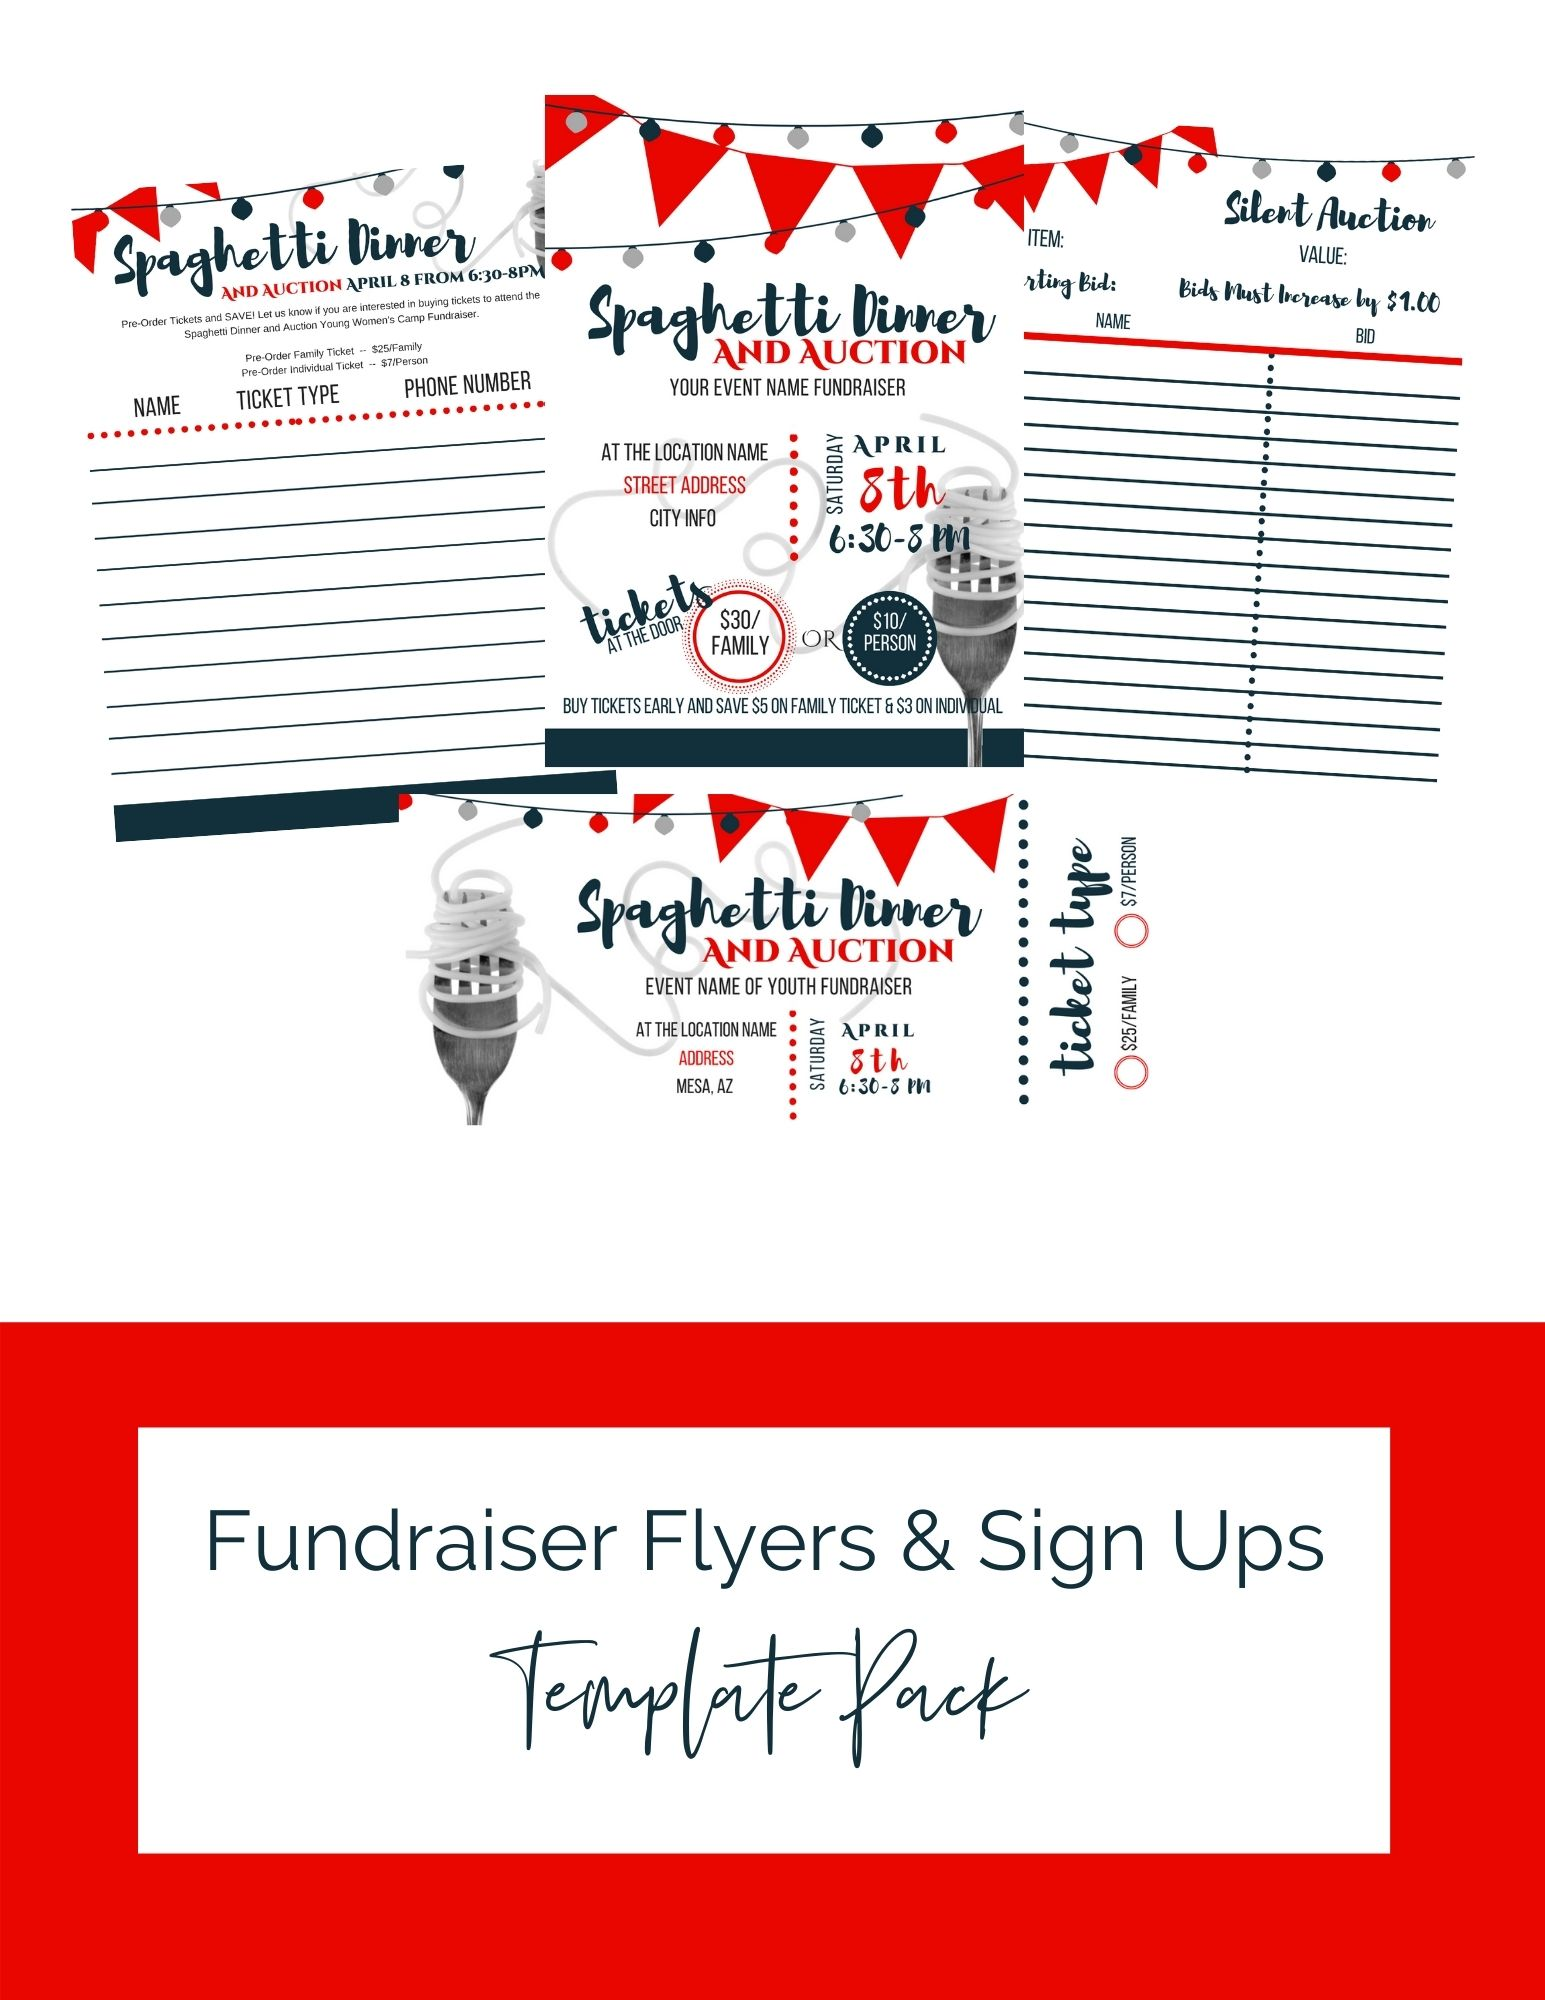 Spaghetti Dinner and Auction Fundraiser Flyers & Sign Ups Printables